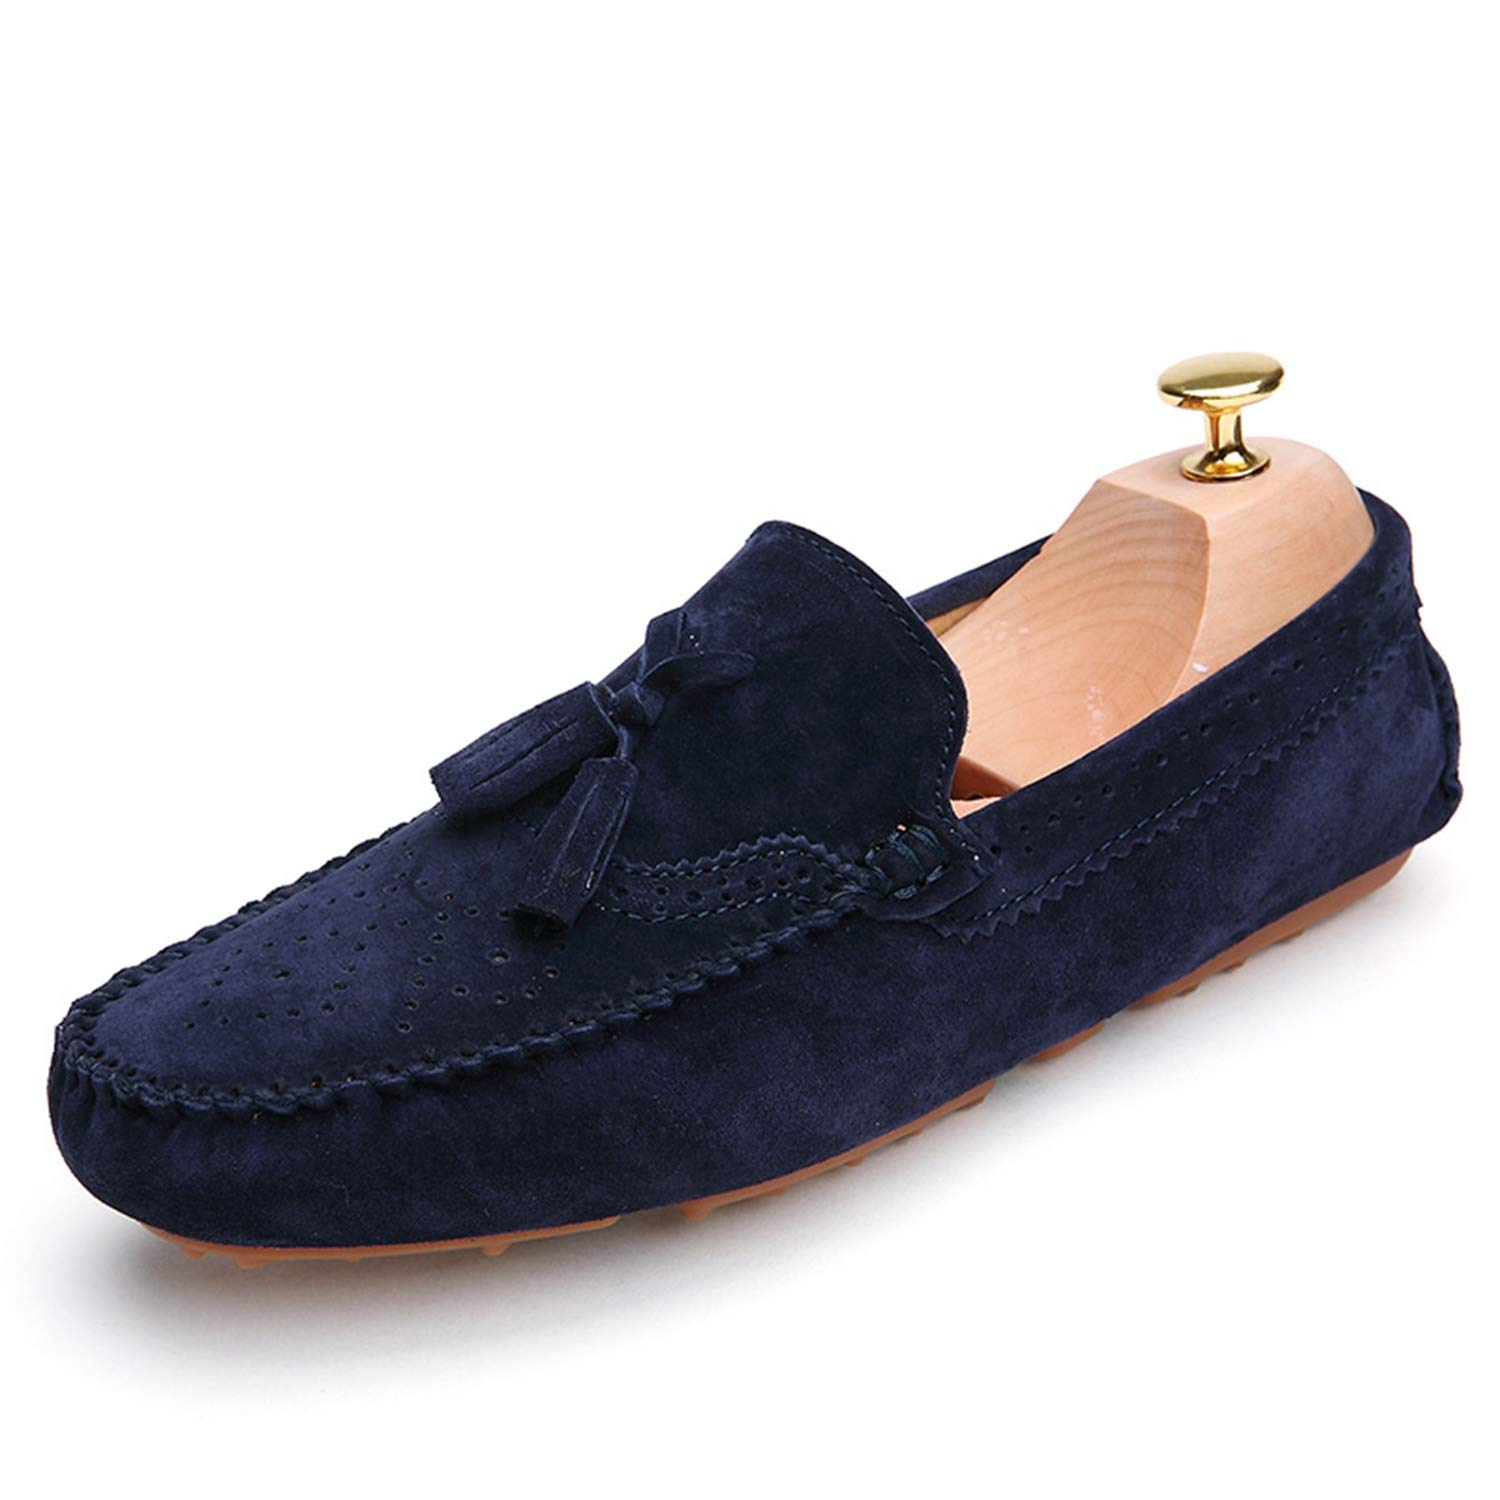 Yincoo Men Loafers Genuine Leather Moccasins Slip On Mens Tassel Casual Shoes Flats Moccasin Driving Shoes